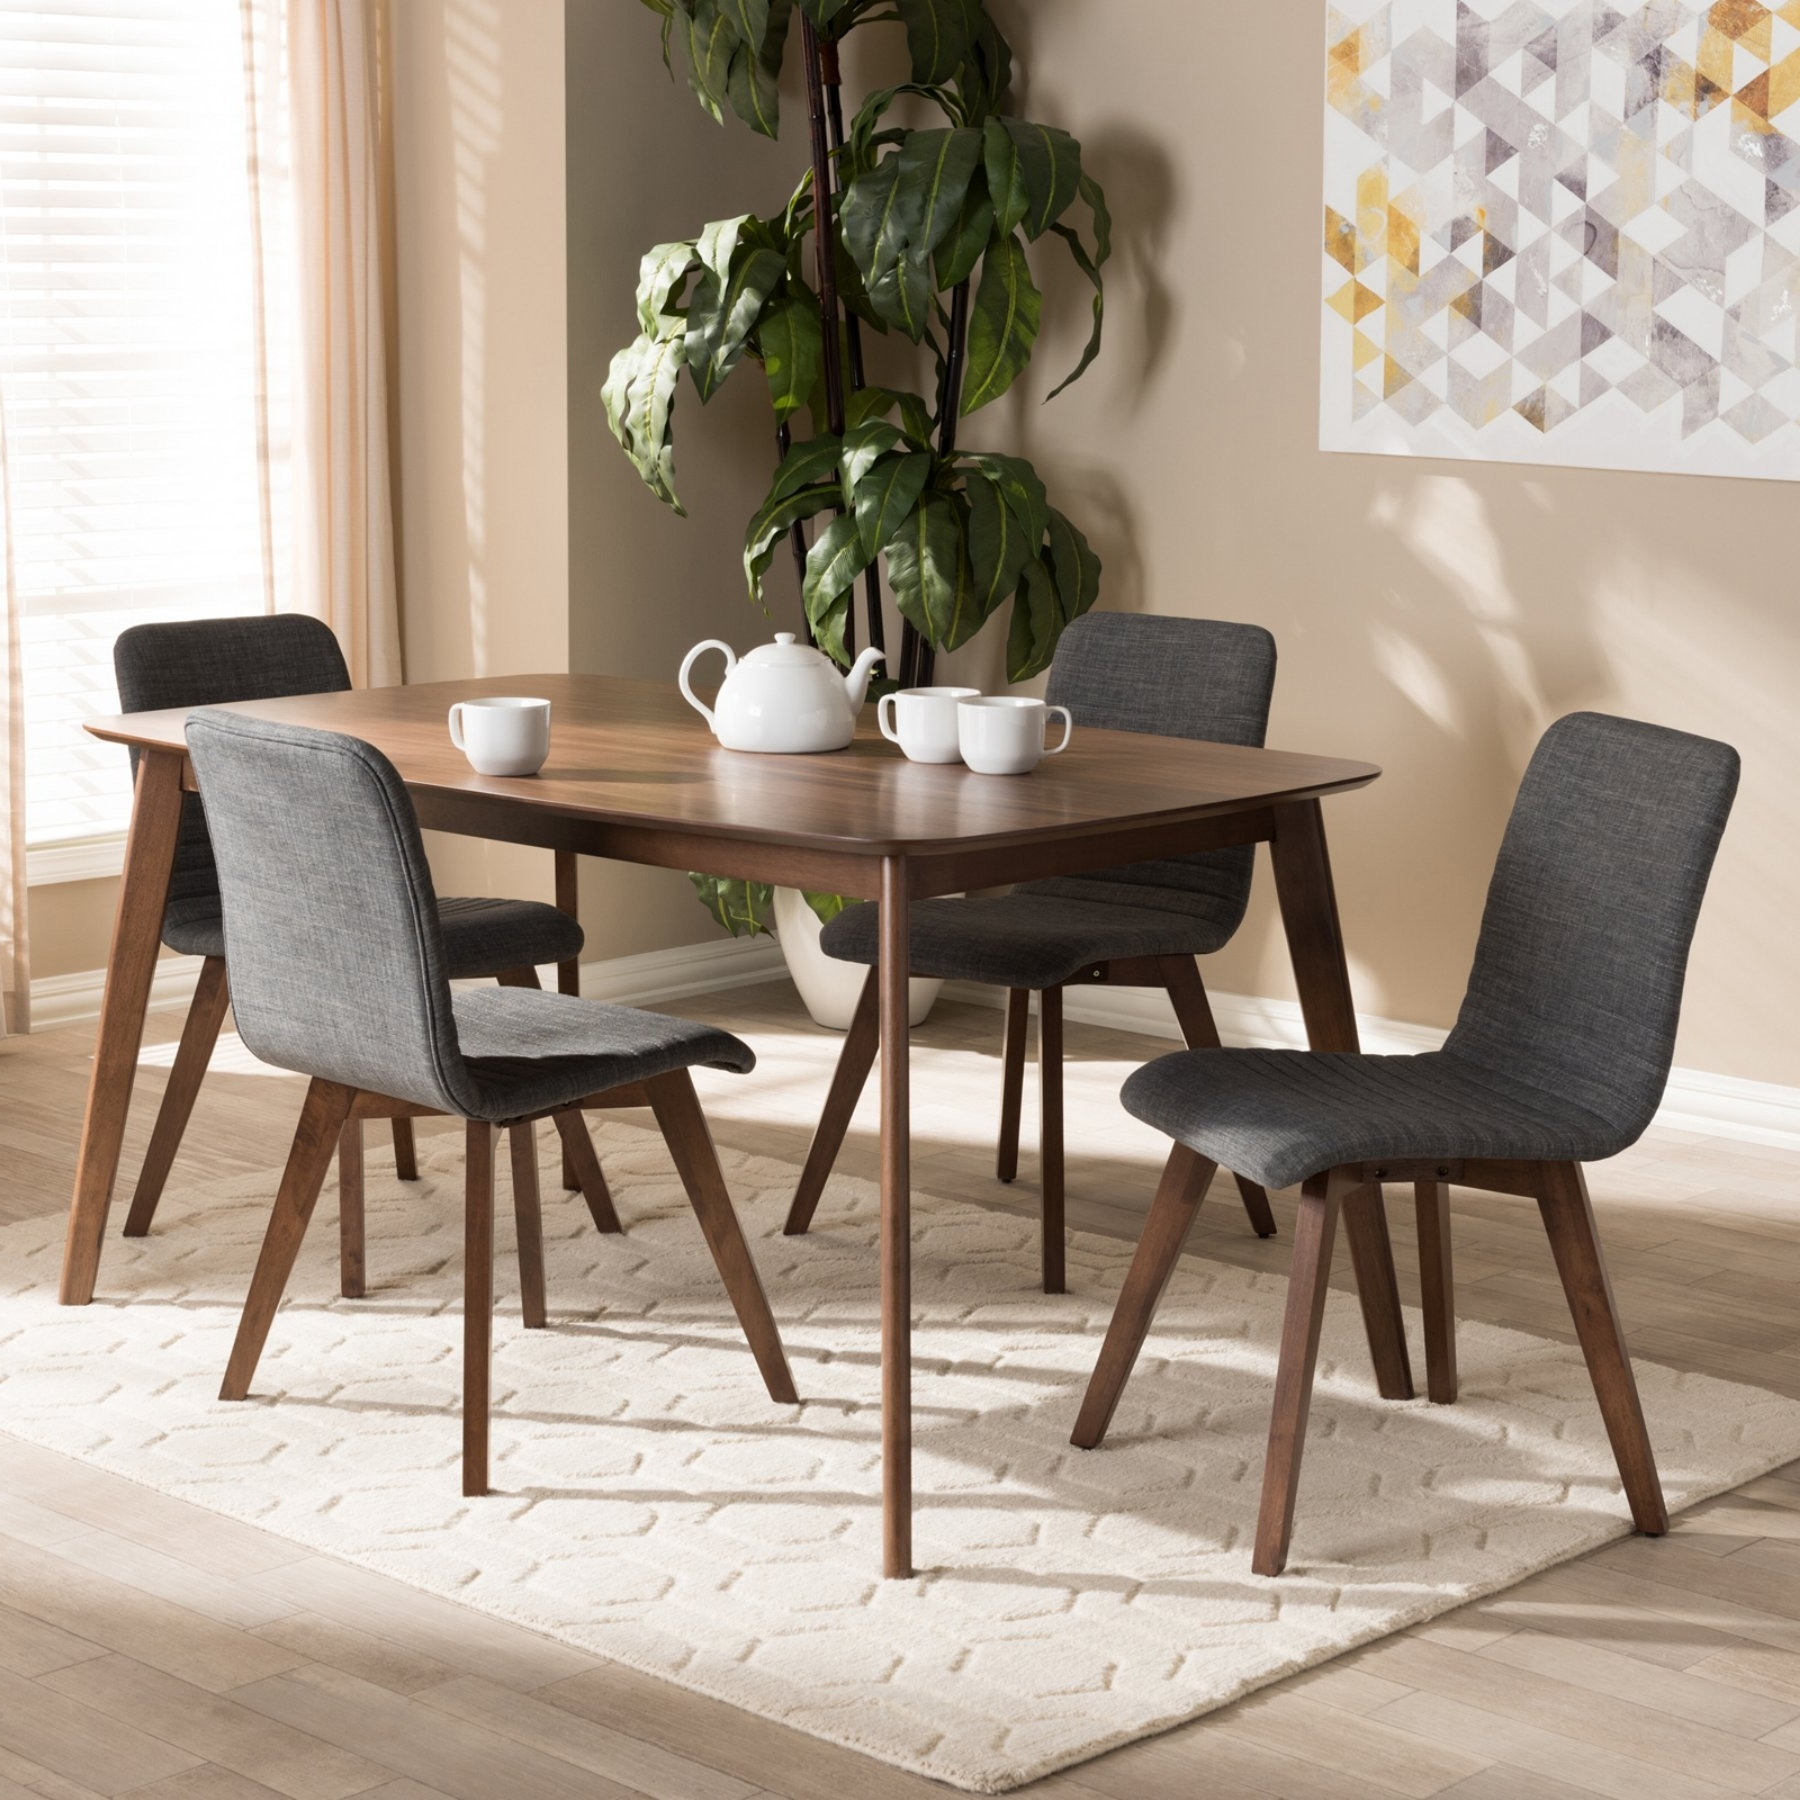 Well Known Craftsman 5 Piece Round Dining Sets With Uph Side Chairs Intended For Baxton Studio Sugar Mid Century Modern Fabric Upholstered 5 Piece (View 9 of 25)